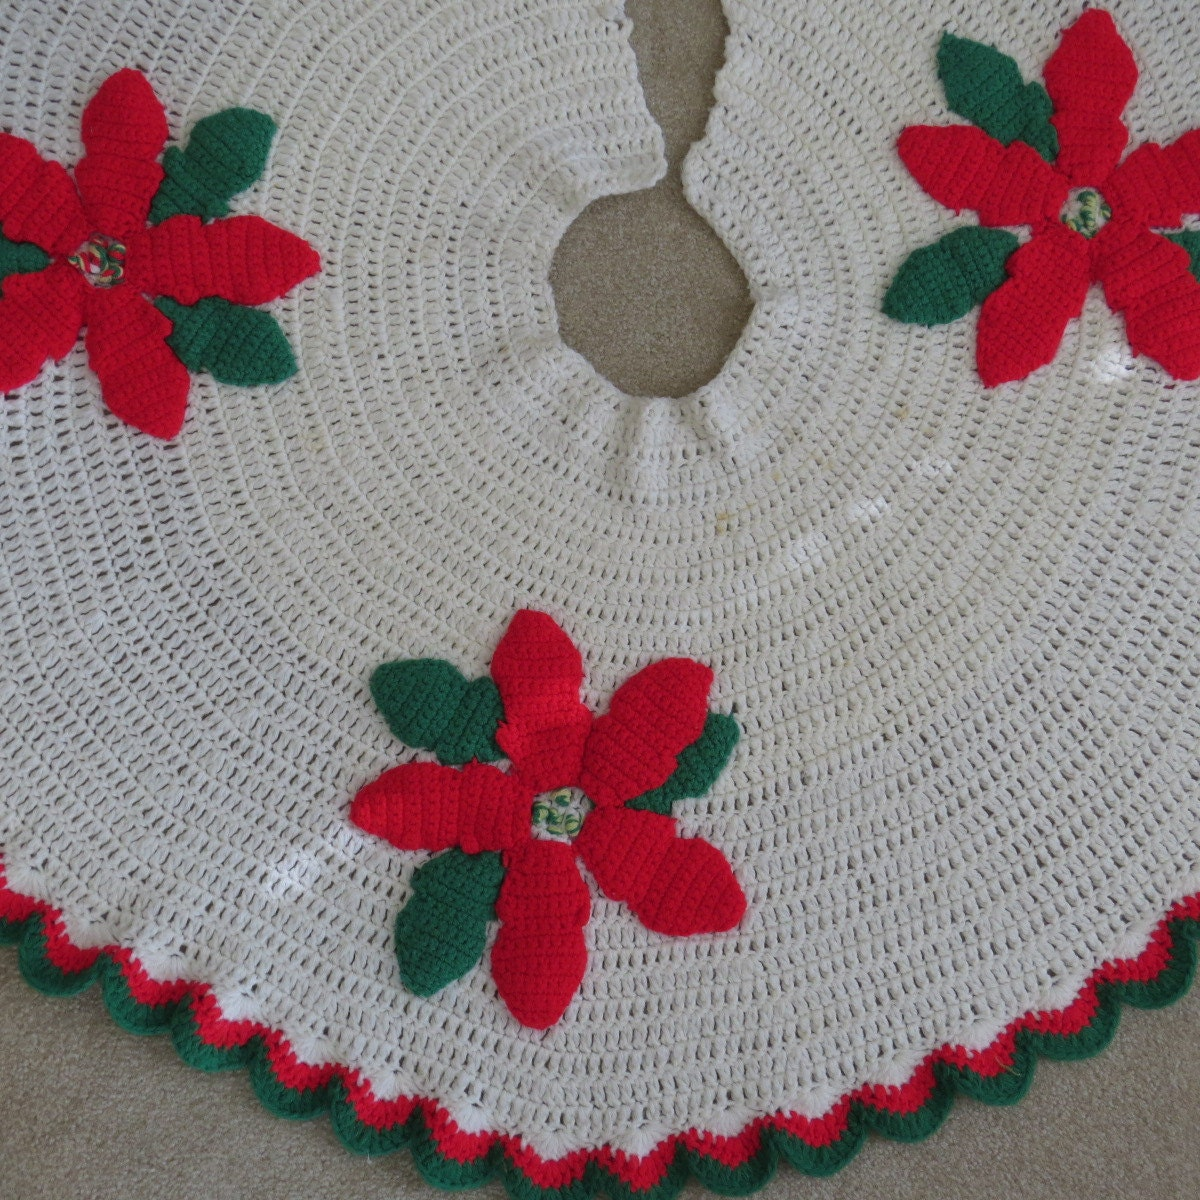 Crochet Xmas Tree Skirt : Vintage Crochet Christmas Tree Skirt - Big Red Poinsettias - Holiday ...